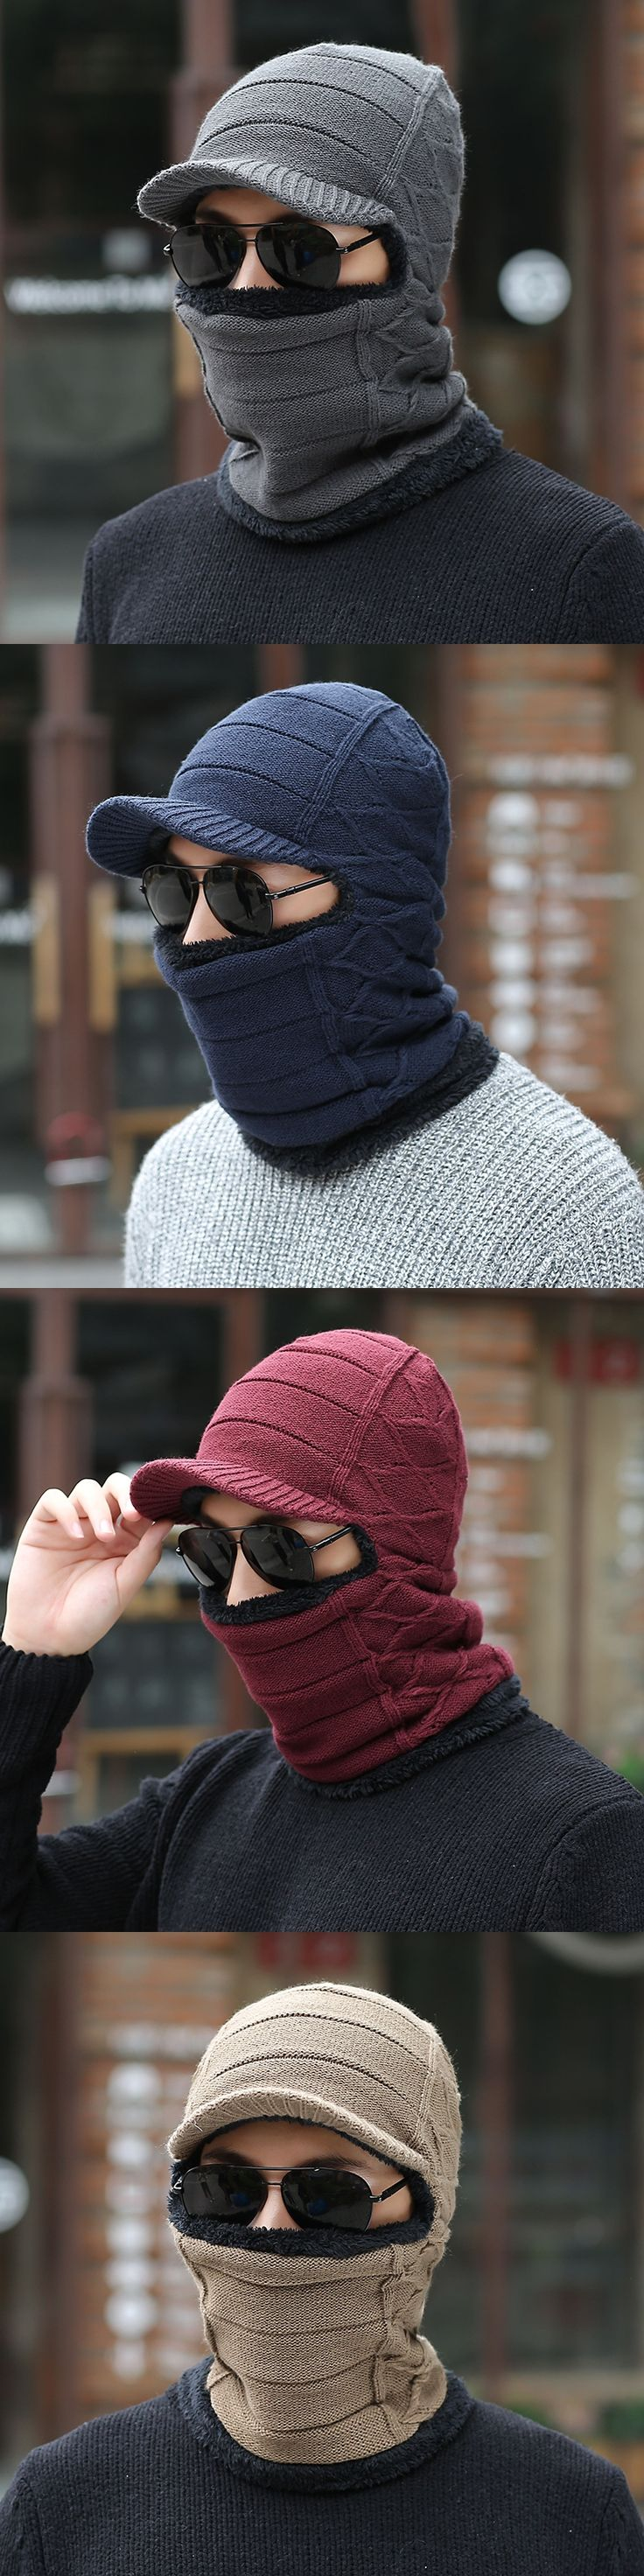 The 25 best knitted balaclava ideas on pinterest knitting skull mask balaclava face mask winter hat for women men knitted cap neck warmer caps winter bankloansurffo Images